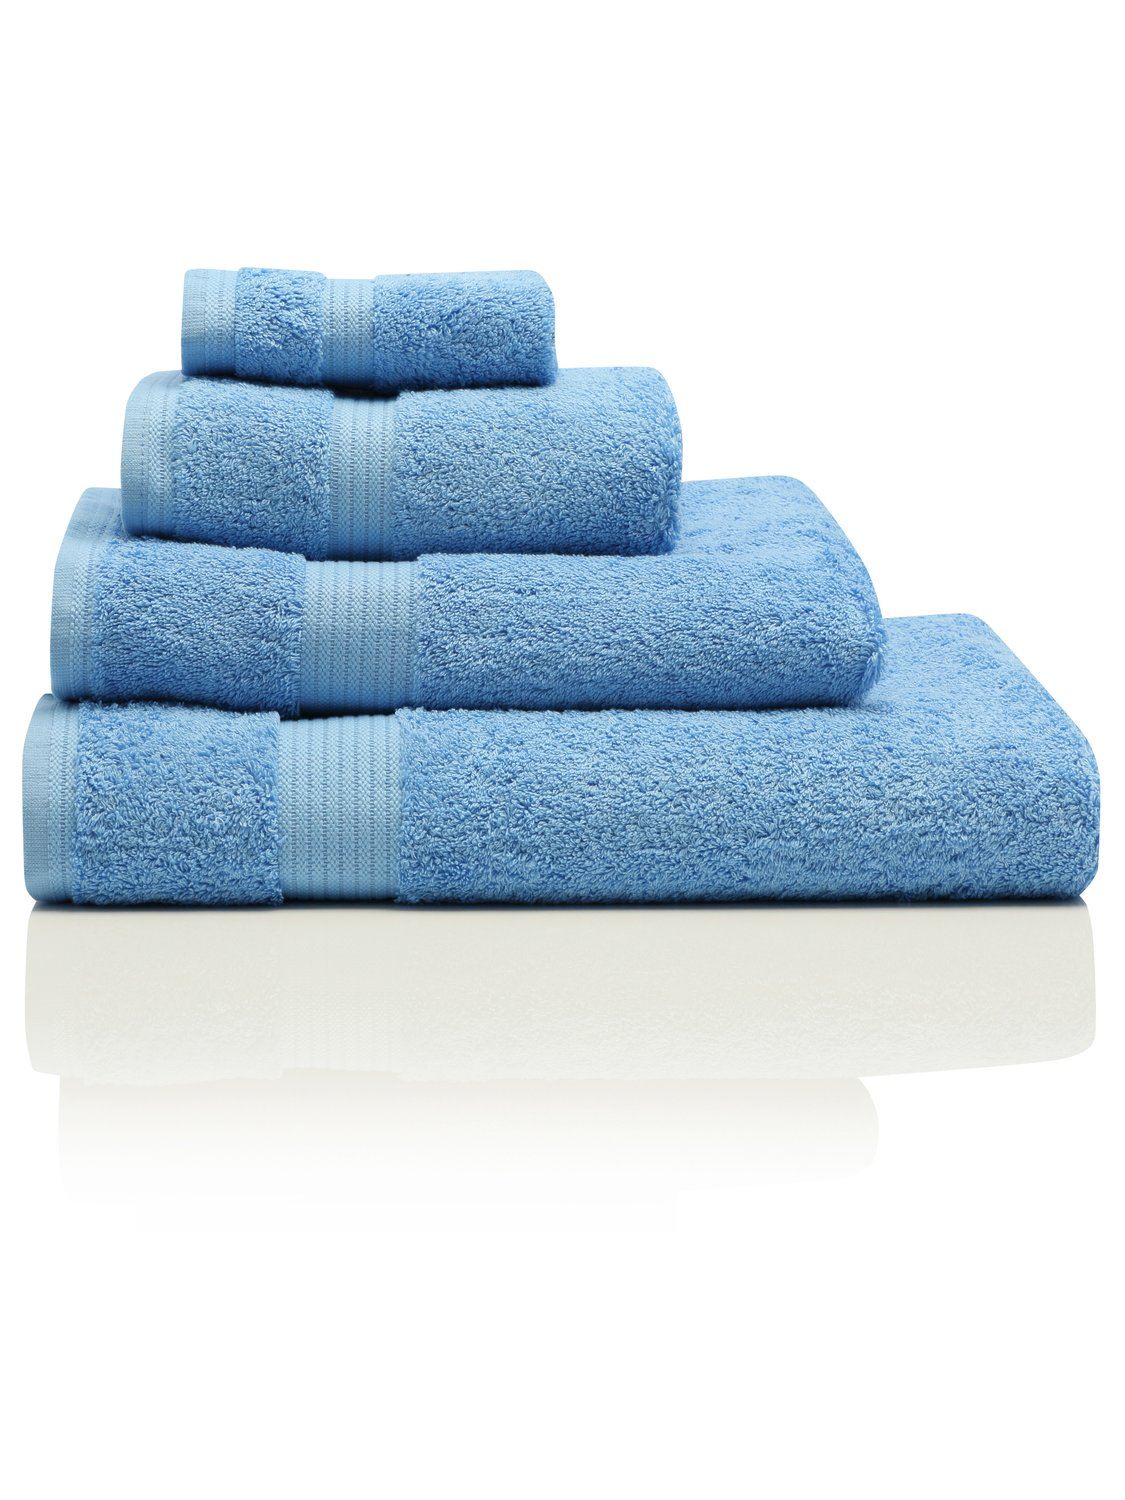 100% Combed Cotton 580Gsm Soft And Absorbent Bathroom Facecloth - Sea Blue